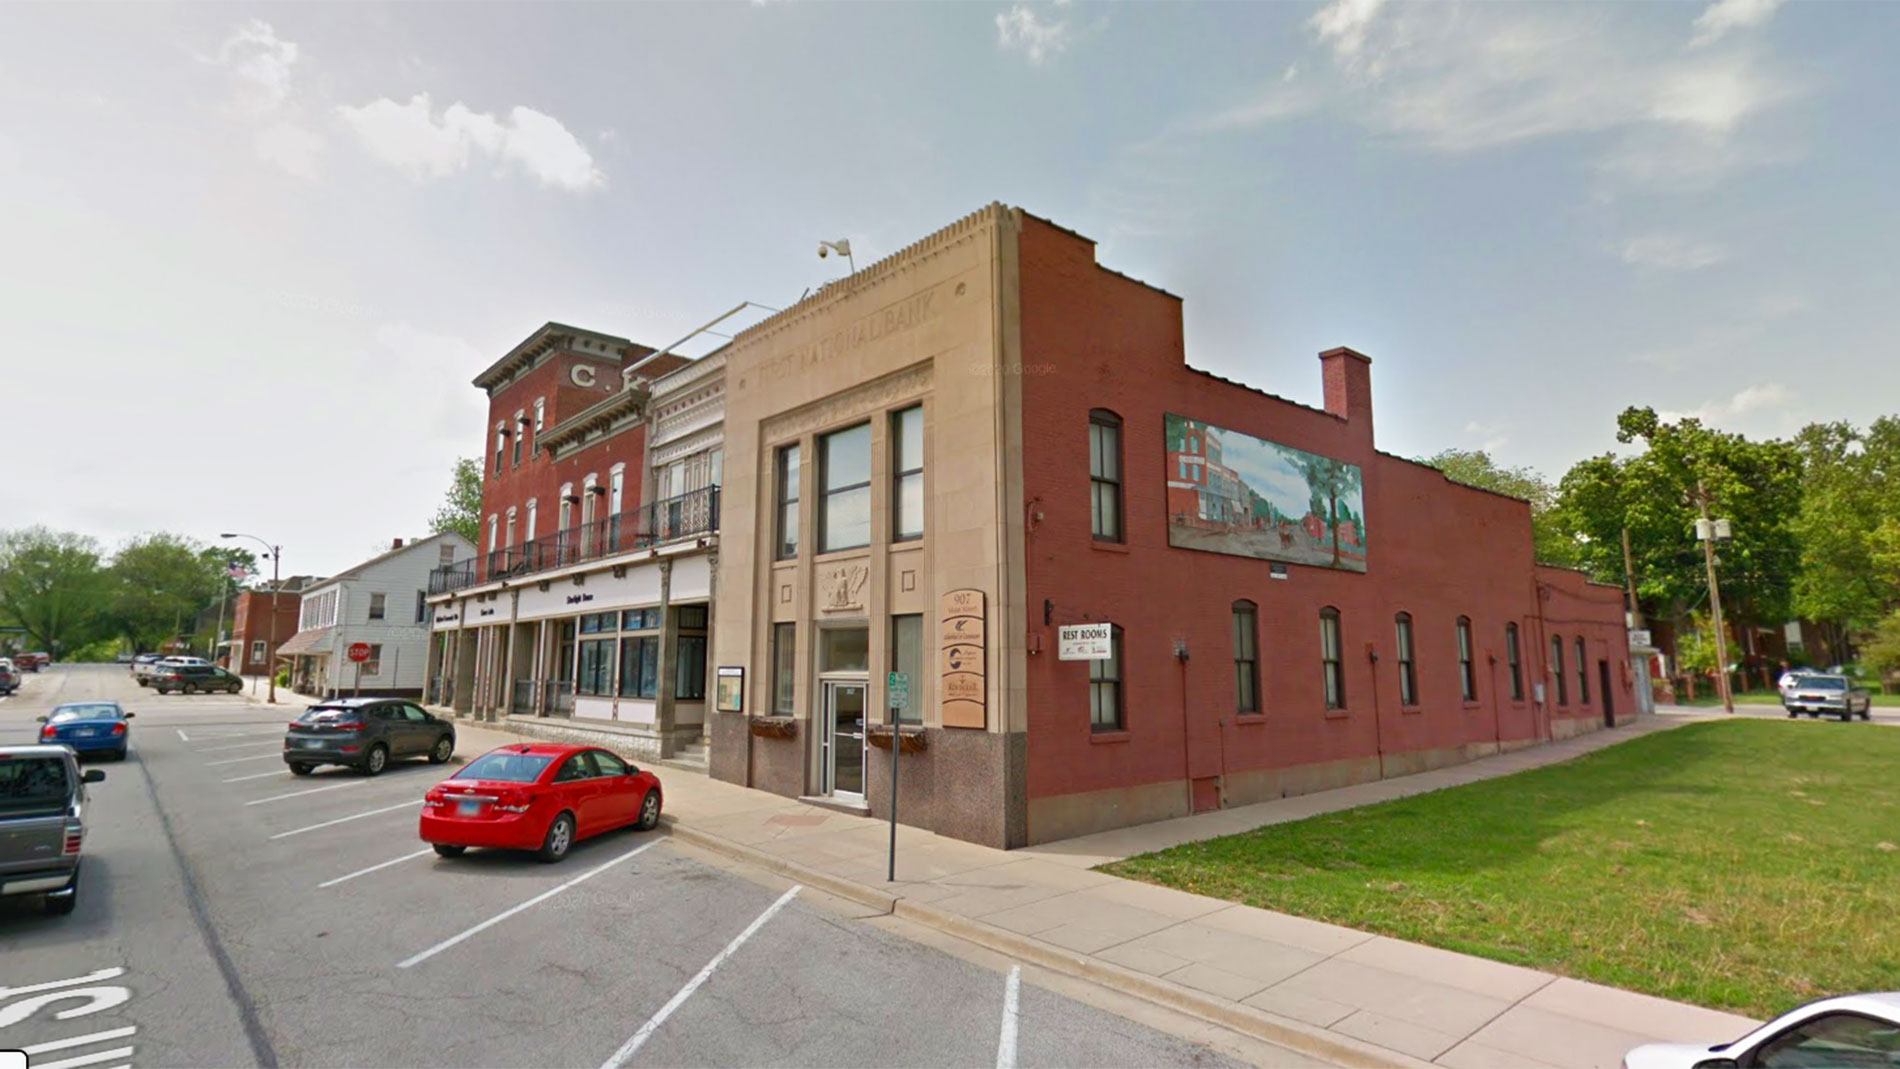 Schlafly Beer will open a brewpub in Highland, Illinois, later this year